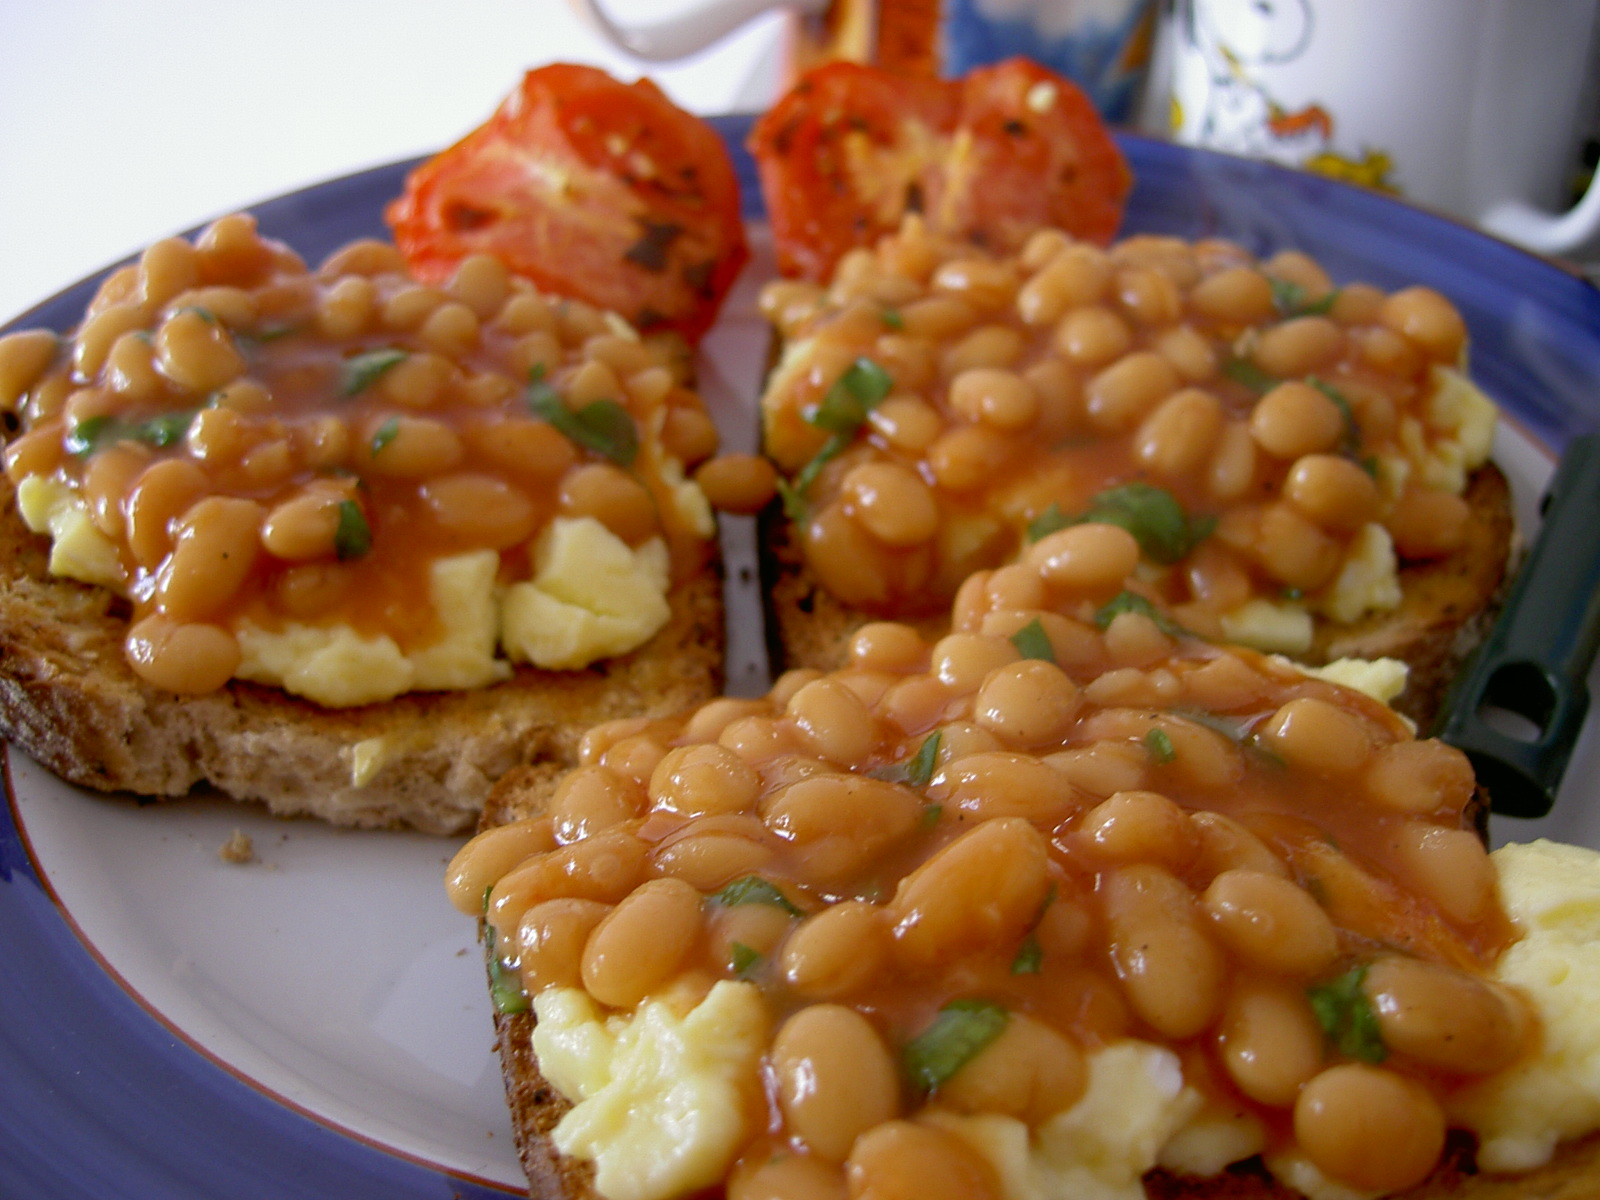 Baked beans and eggs presented beautifully on a toast.